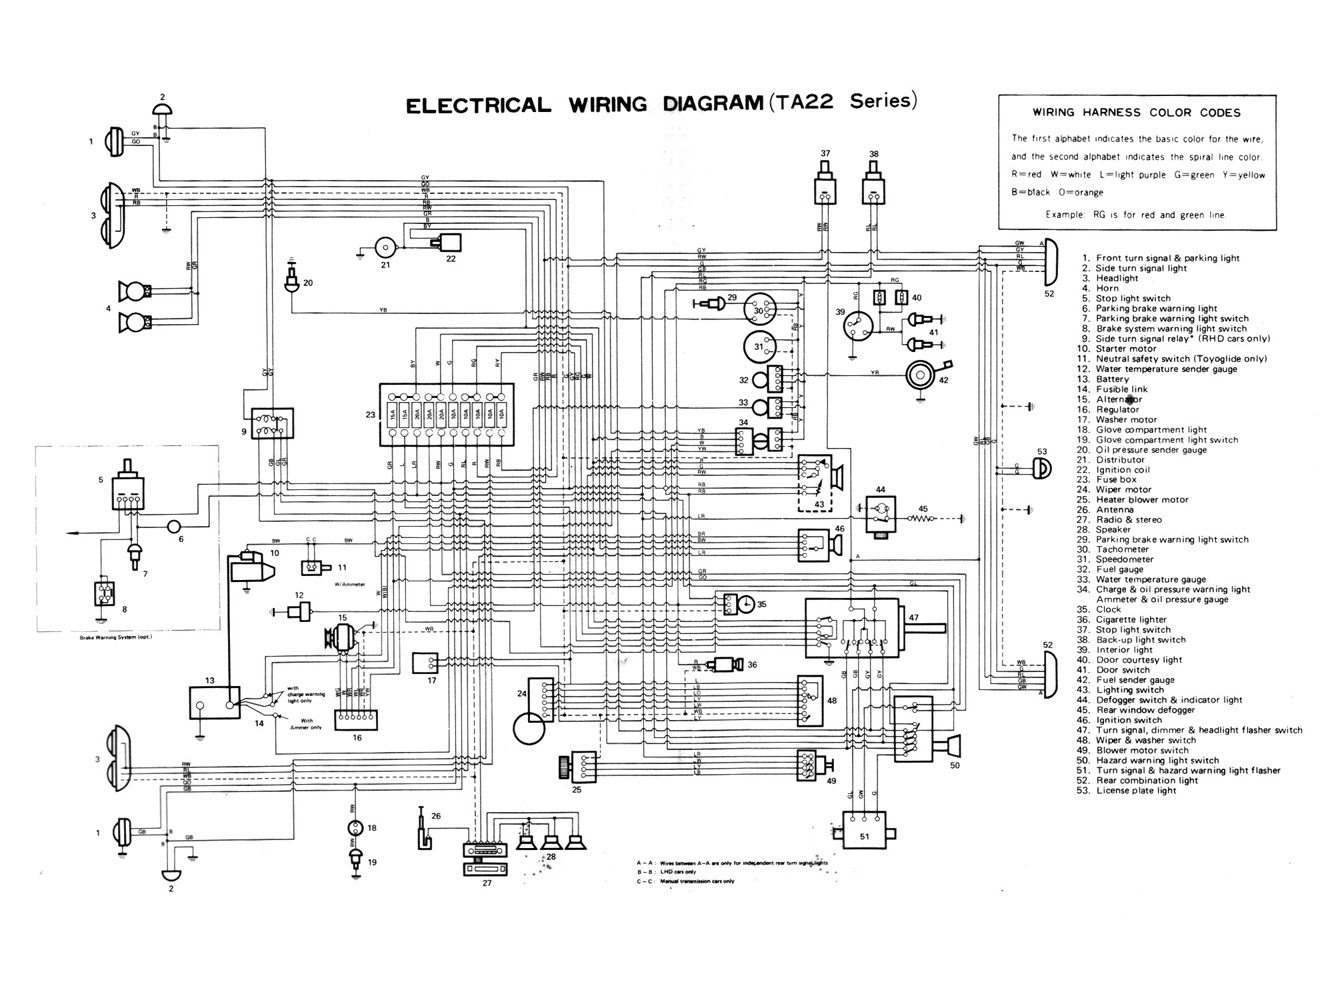 09 24 Electrical Wiring Diagram (TA22 Series) 2001 toyota celica wiring diagram 2001 toyota celica radio wiring 2001 toyota celica fuse box layout at readyjetset.co